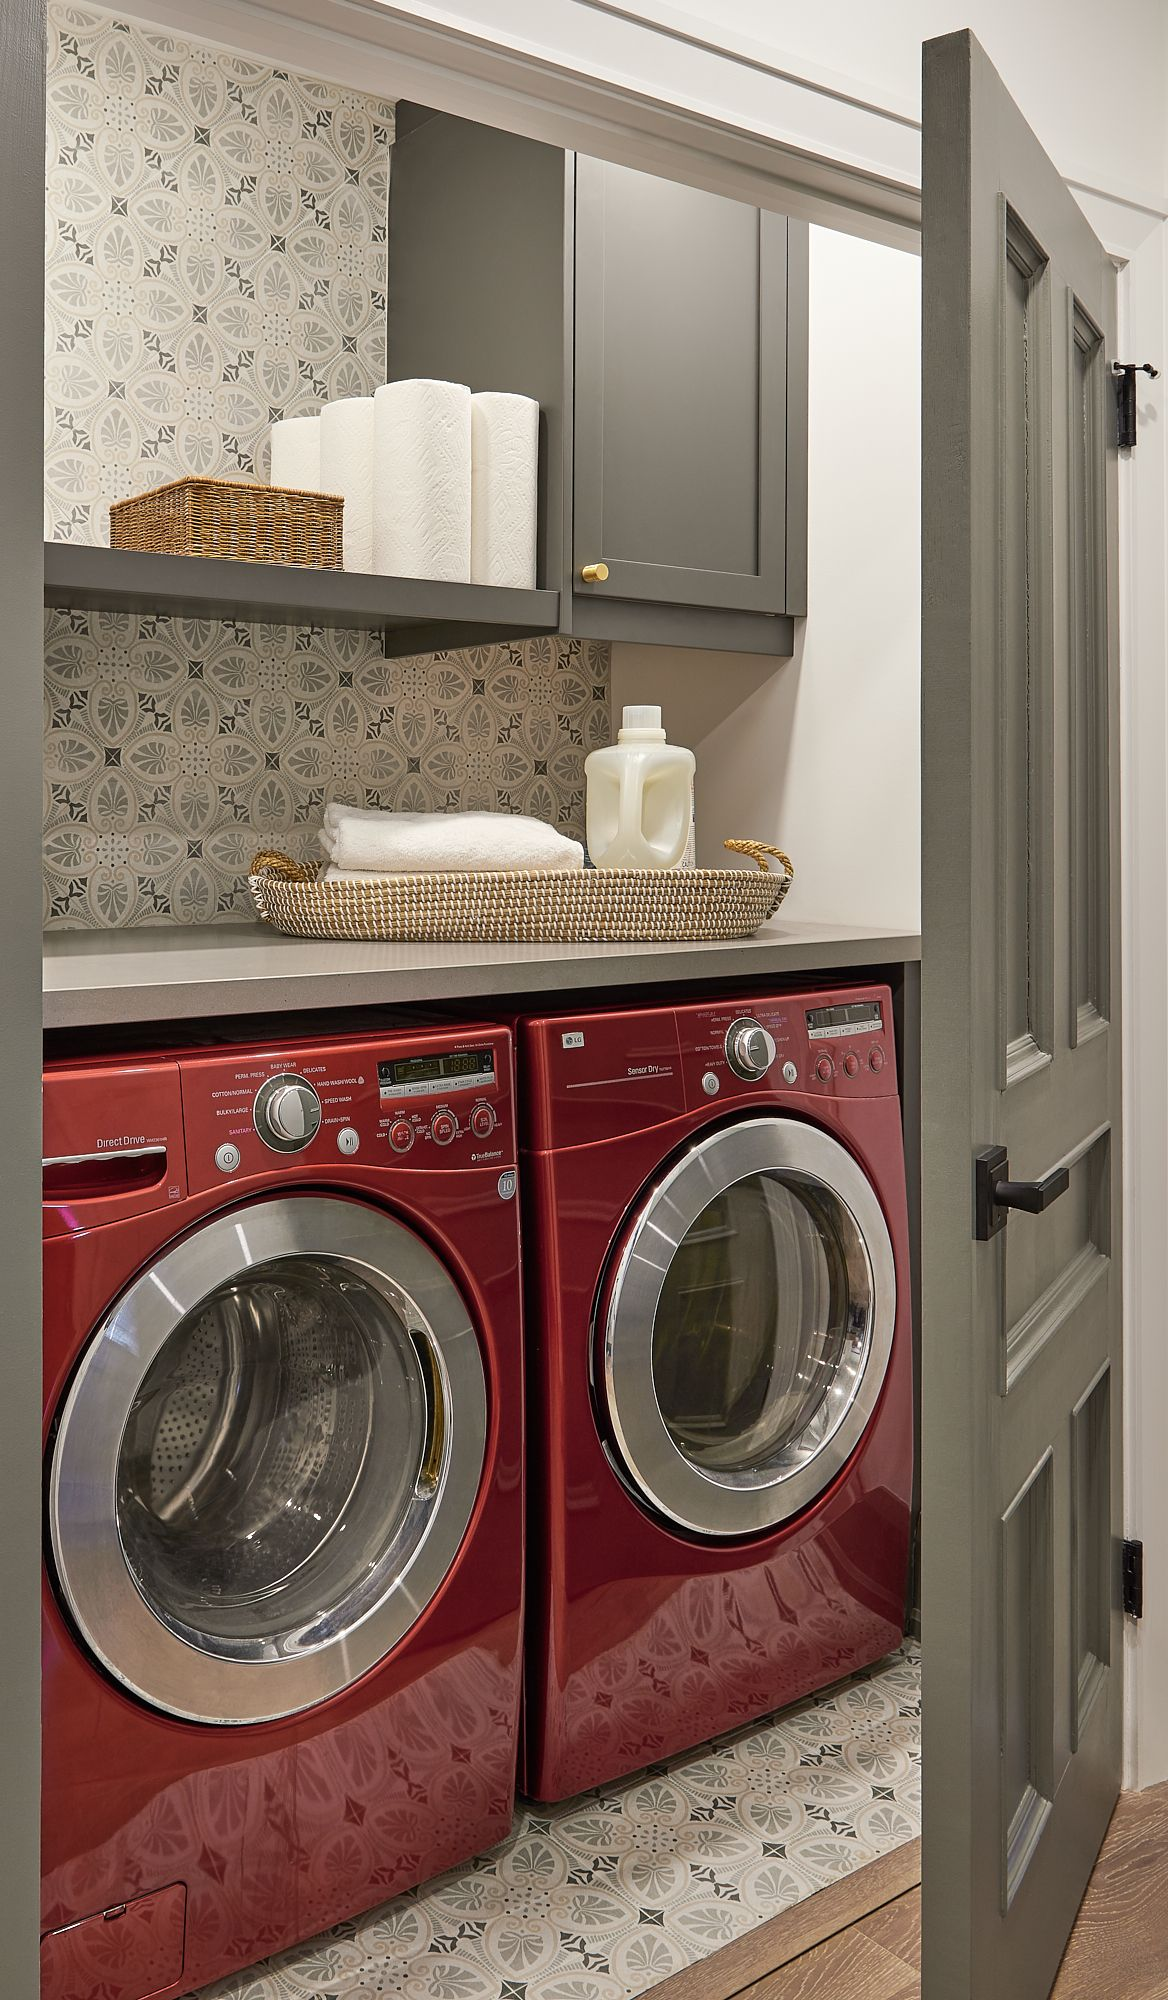 Laundry Room Fun In 2020 Red Laundry Rooms Red Washer And Dryer Laundry Room Tile